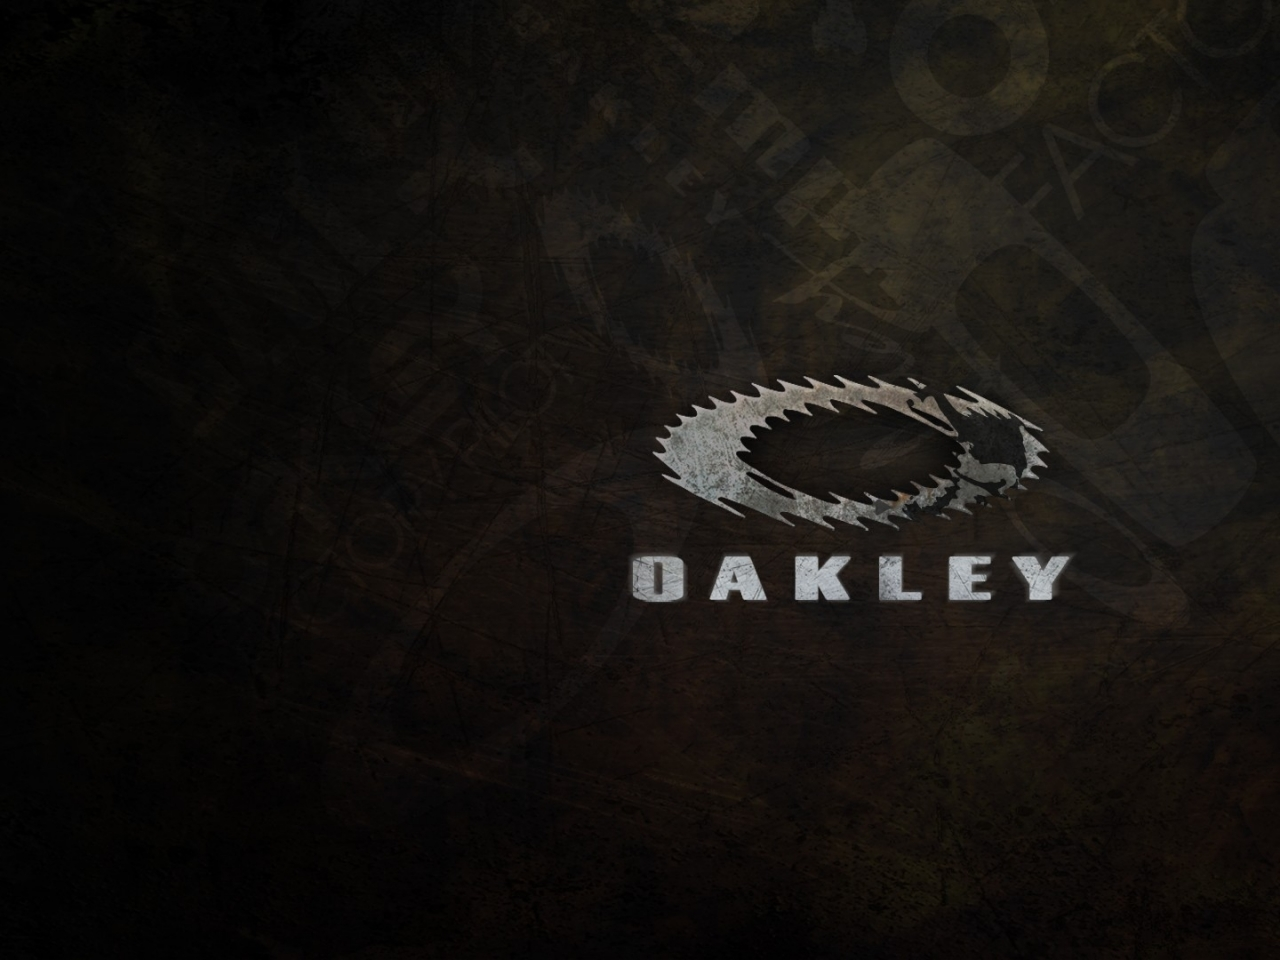 Oakley Iphone Wallpaper Free Desktop Wallpapers Hd Res 1280x960px